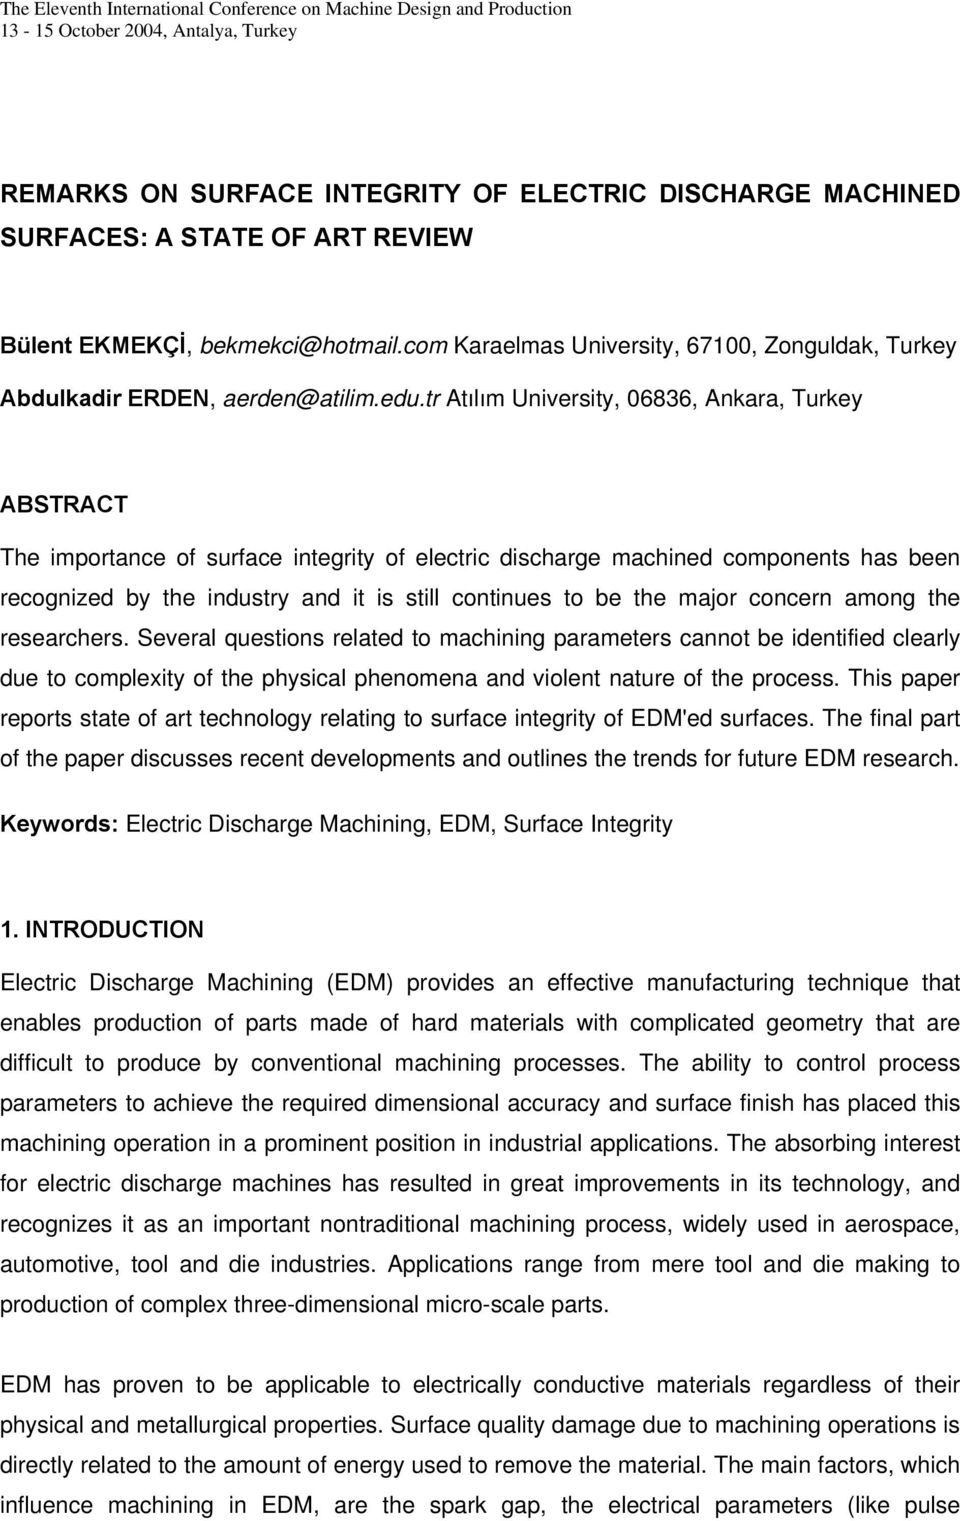 tr Atılım University, 06836, Ankara, Turkey ABSTRACT The importance of surface integrity of electric discharge machined components has been recognized by the industry and it is still continues to be